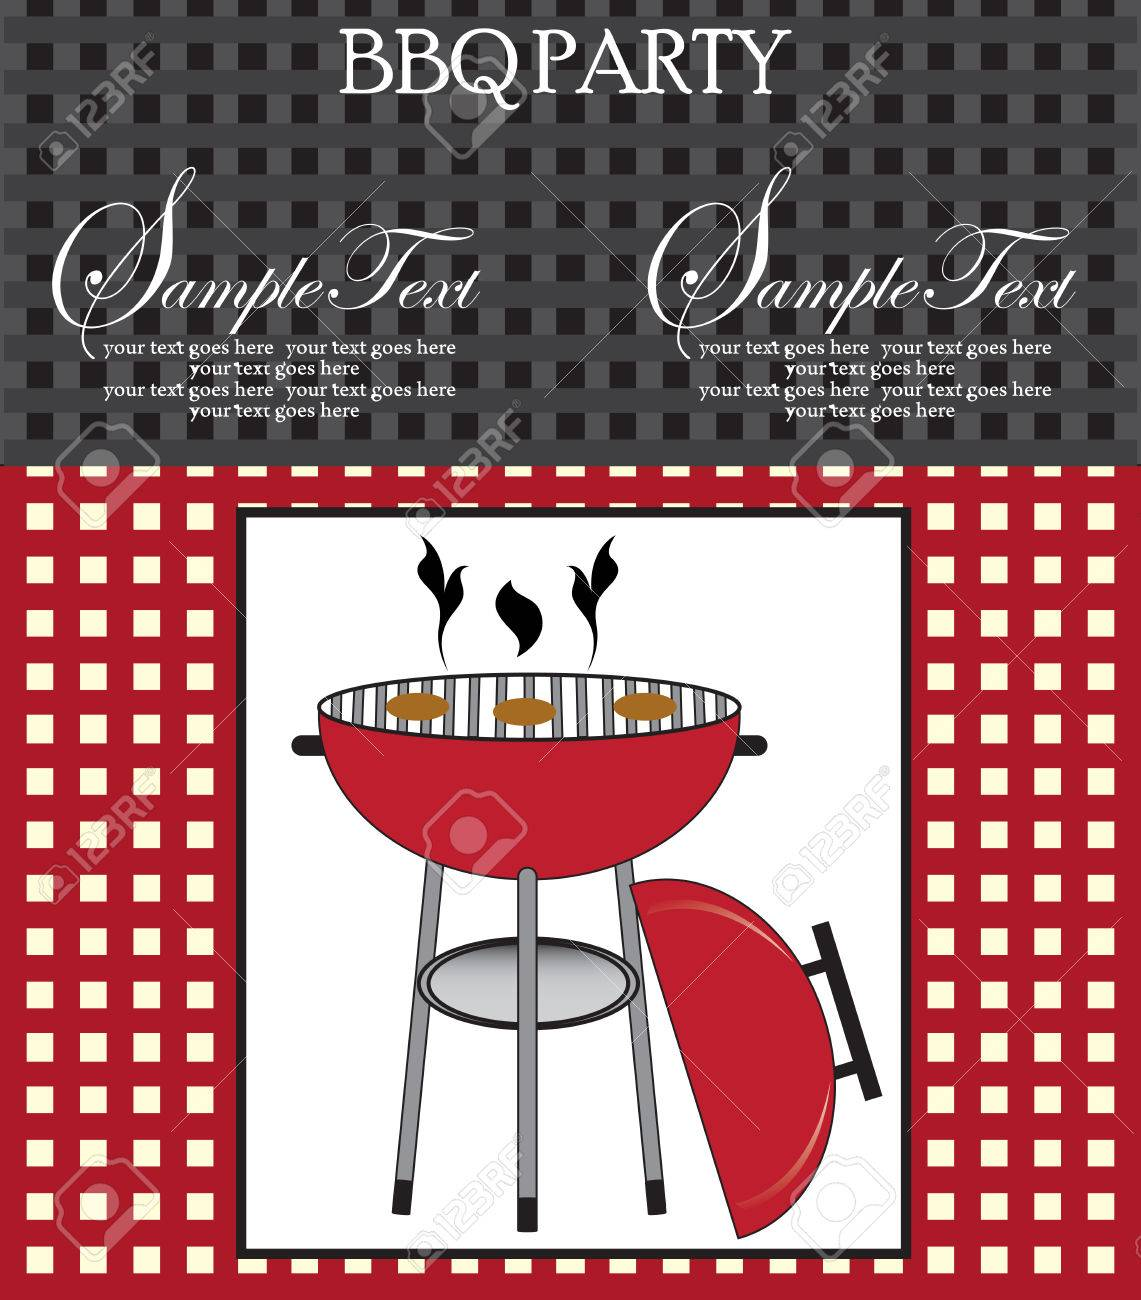 Red Party Invitations Choice Image - Party Invitations Ideas